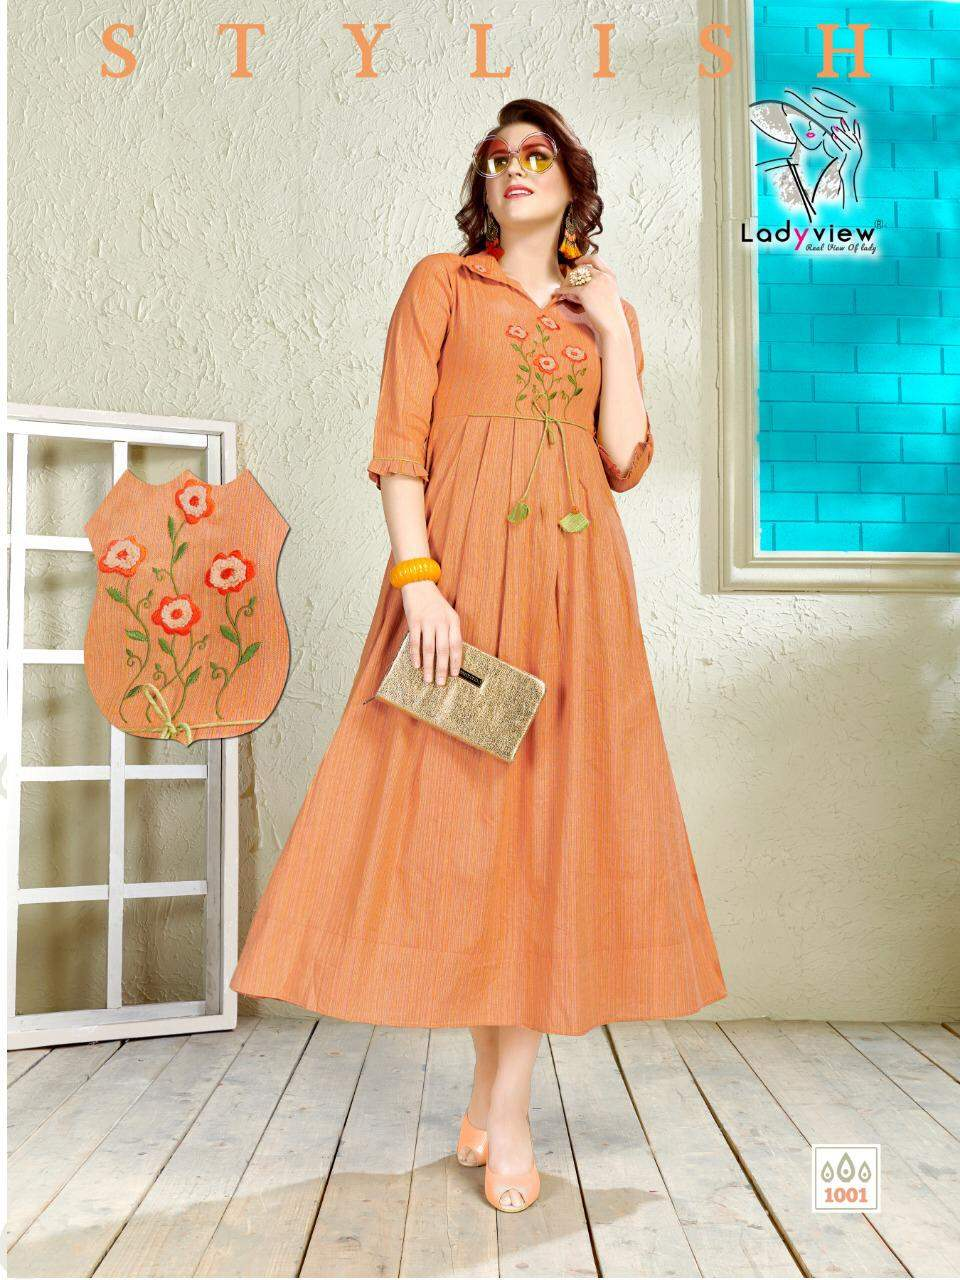 Ladyview Mango Dolly collection 2